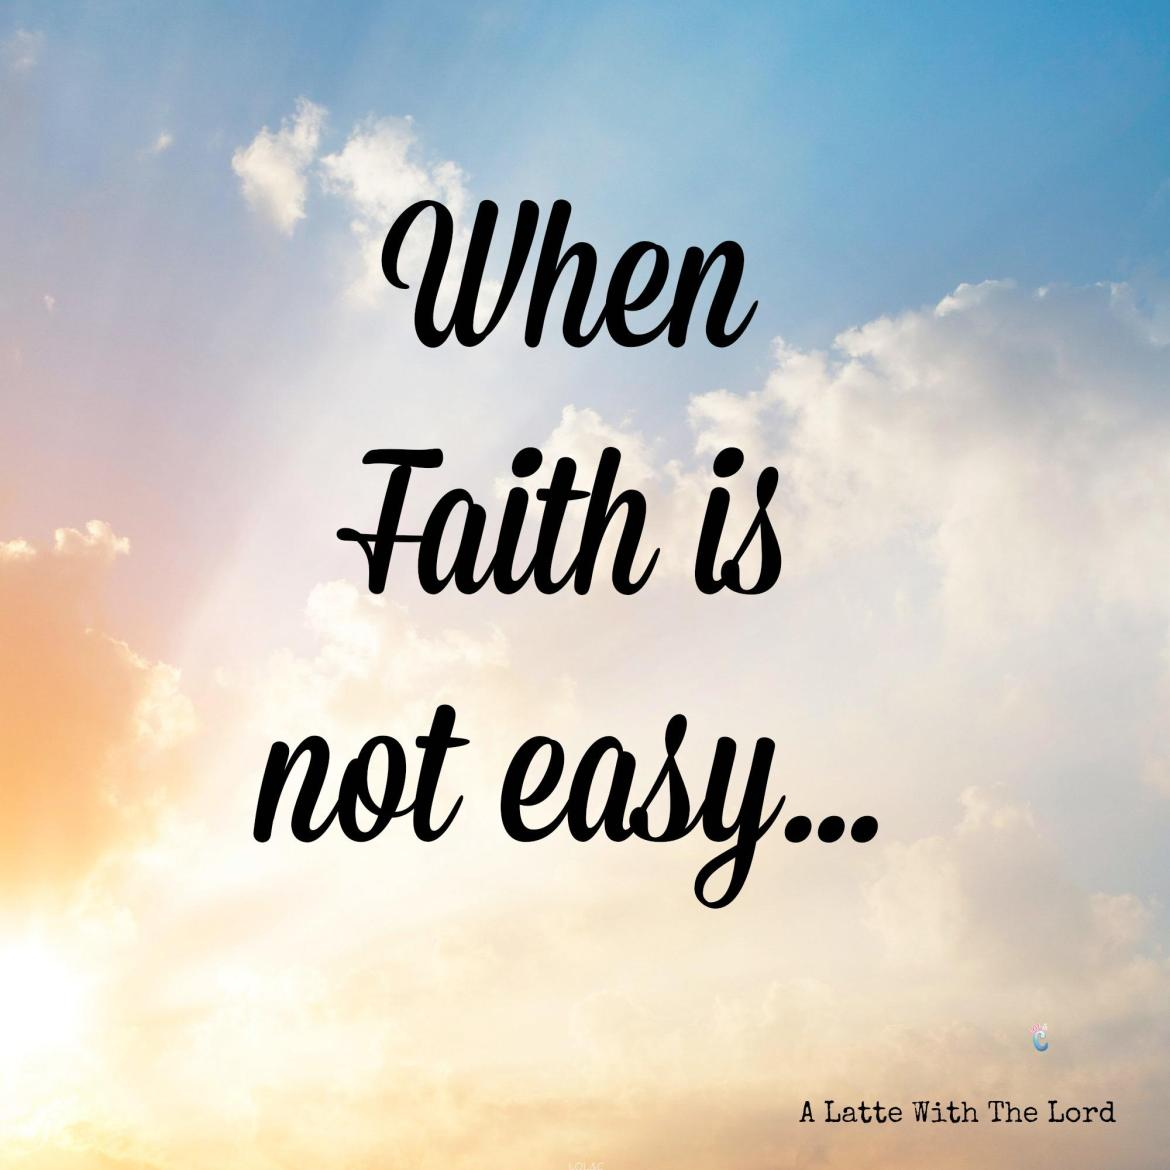 When faith is not easy, what do you do? There are so many lessons that come from this--having faith, obeying, trusting, obstacles, and more!